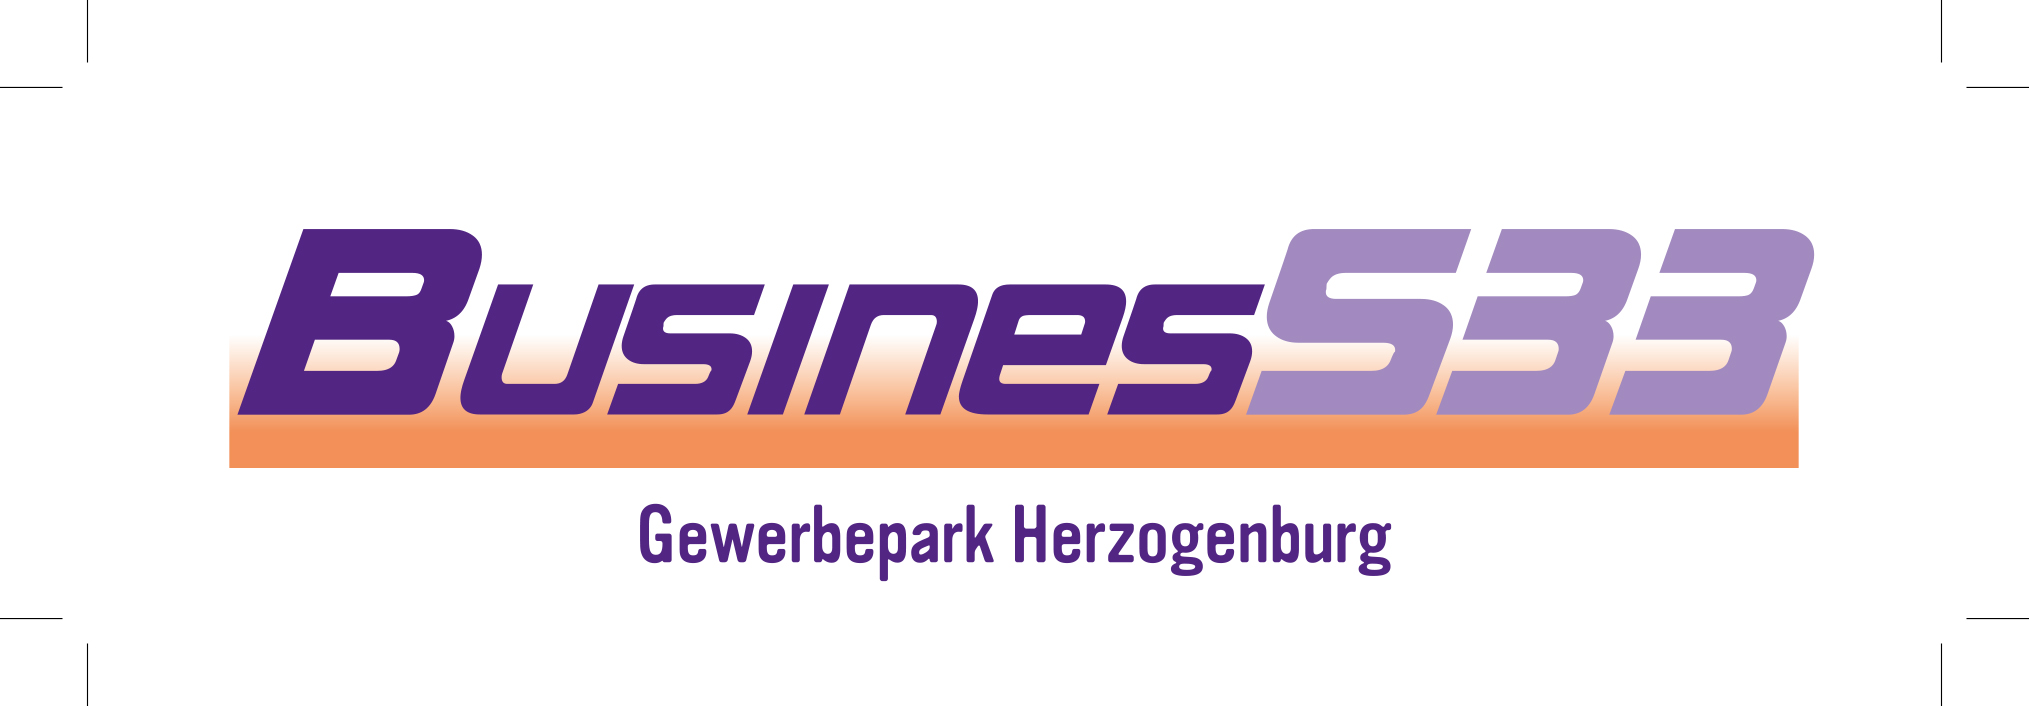 Business33 logo ok2